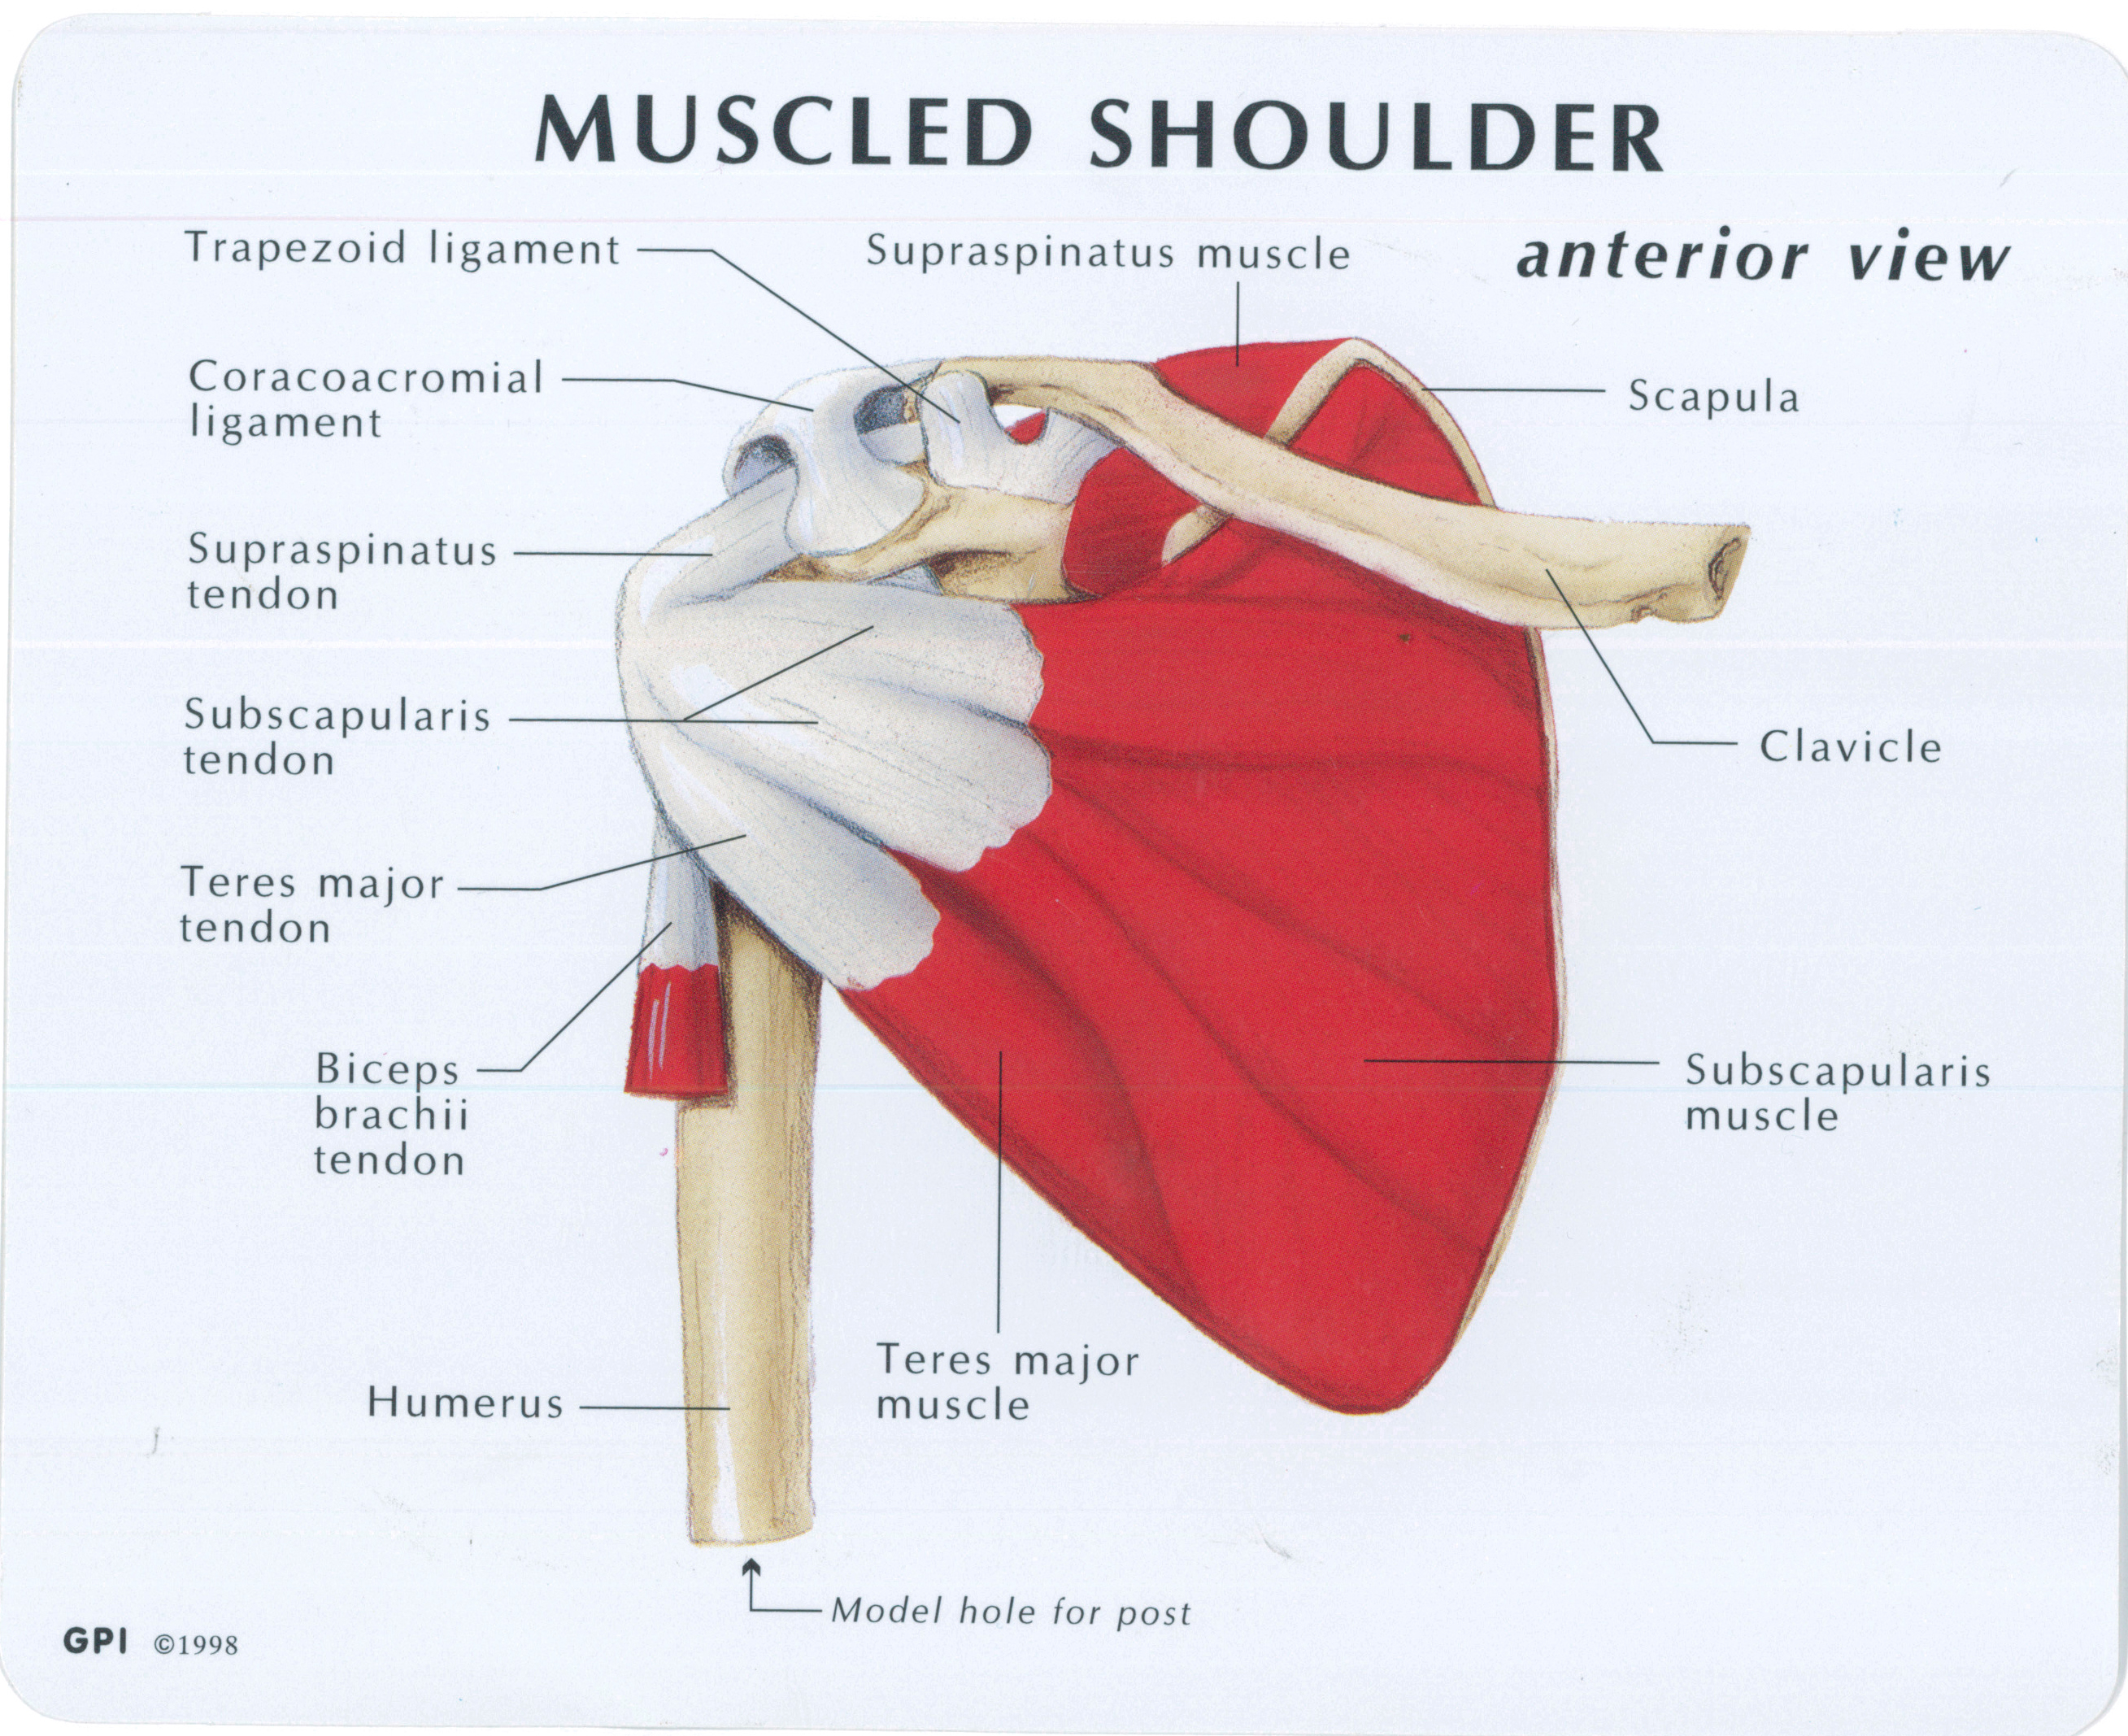 Muscled Shoulder Joint Model